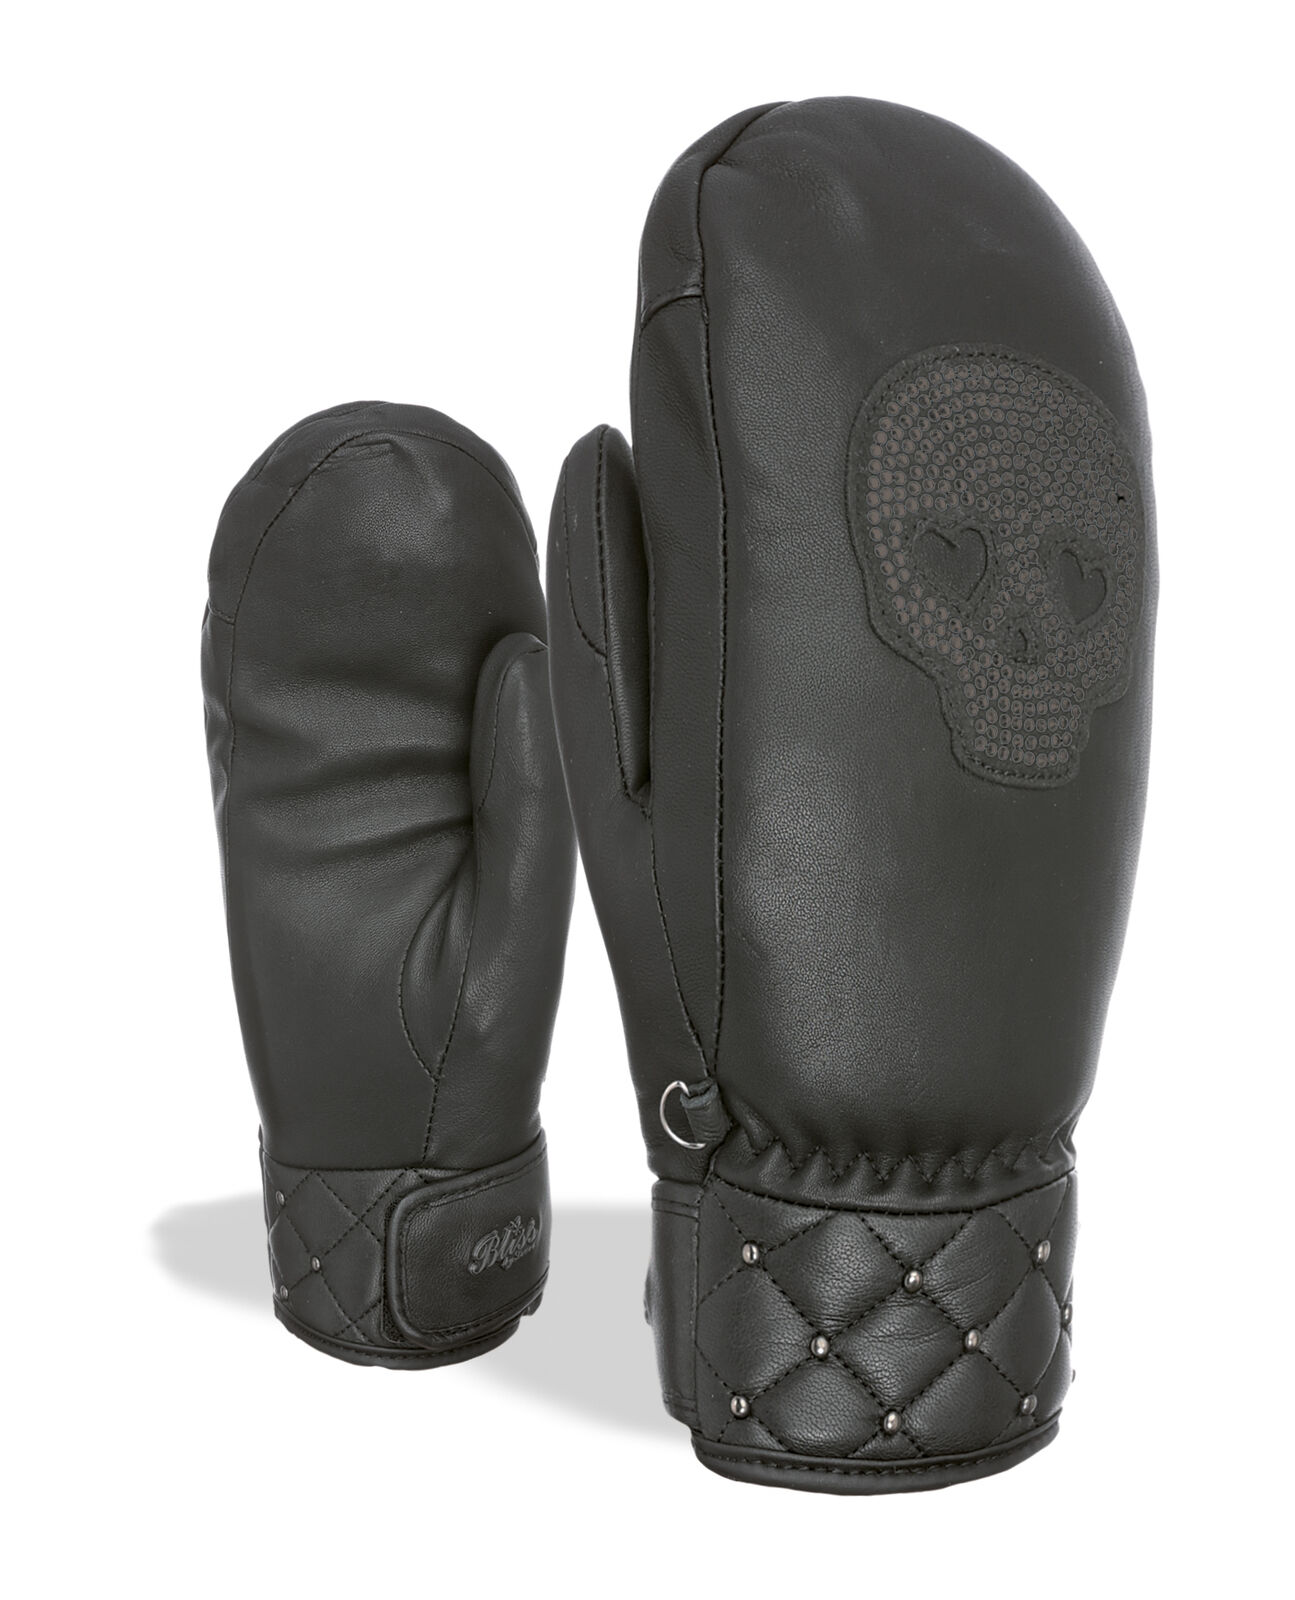 Level Guantes  Felicidad Coco Mitt black Impermeable Transpirable  world famous sale online